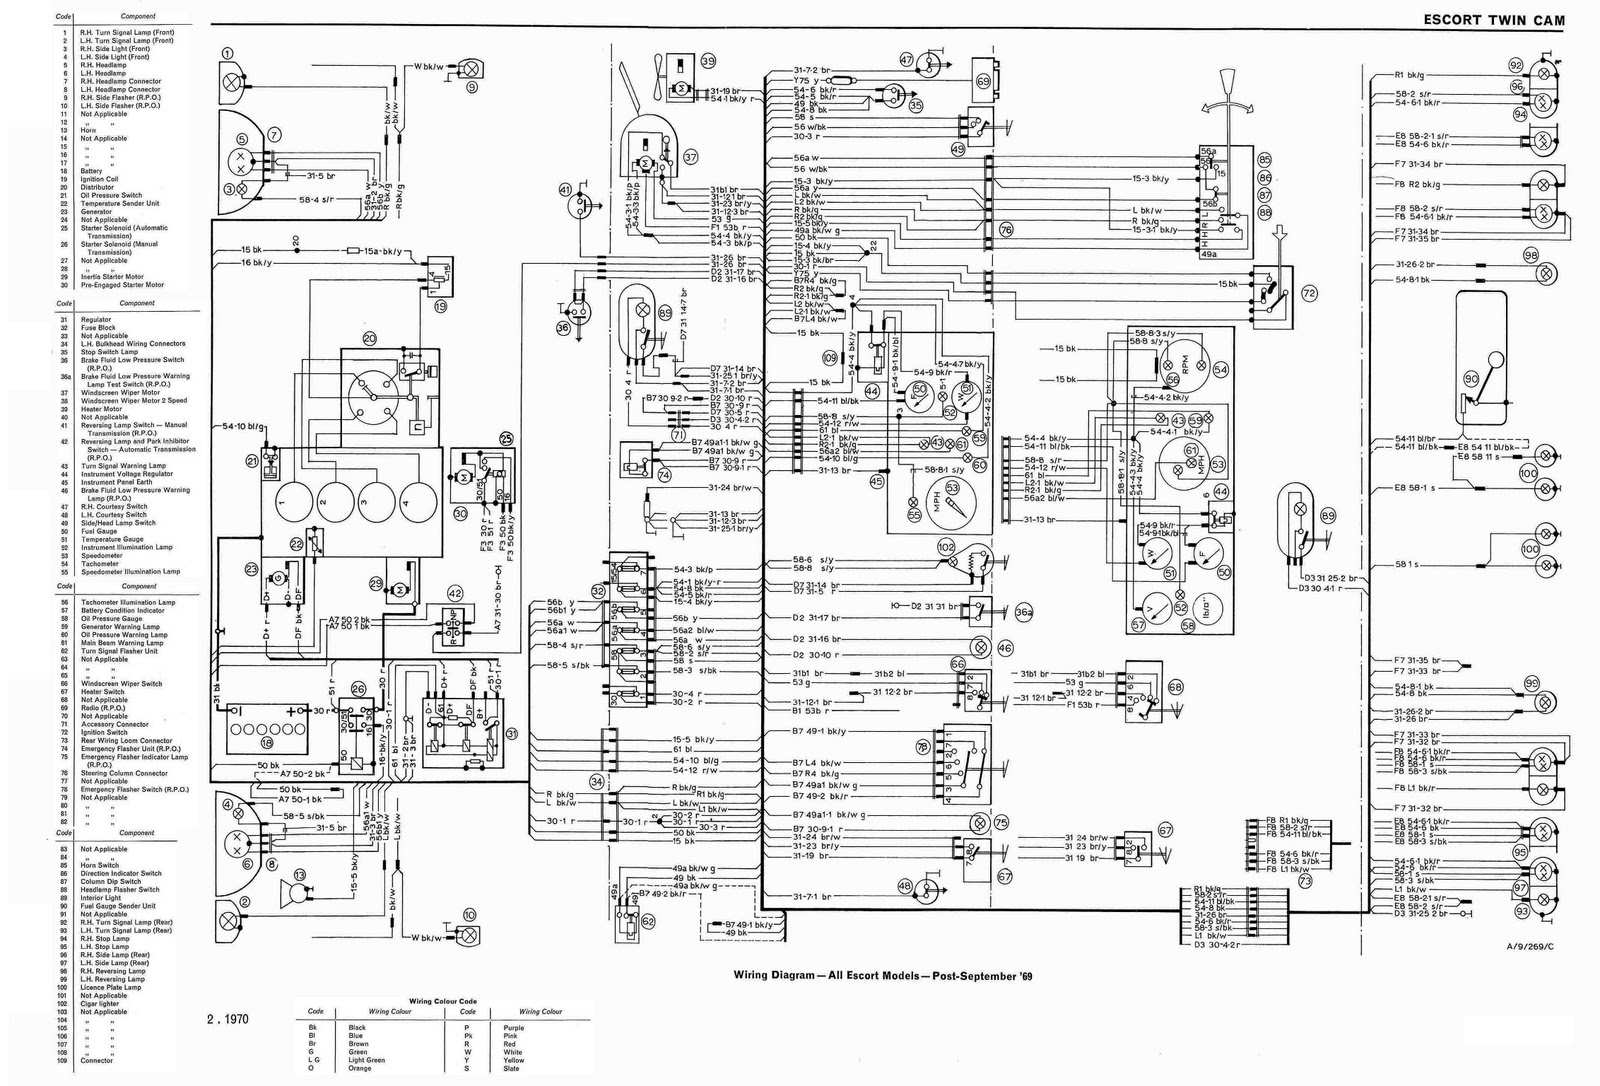 1969 cadillac wiring diagram explore schematic wiring diagram u2022 1994 cadillac deville window diagram 1969 [ 1600 x 1086 Pixel ]